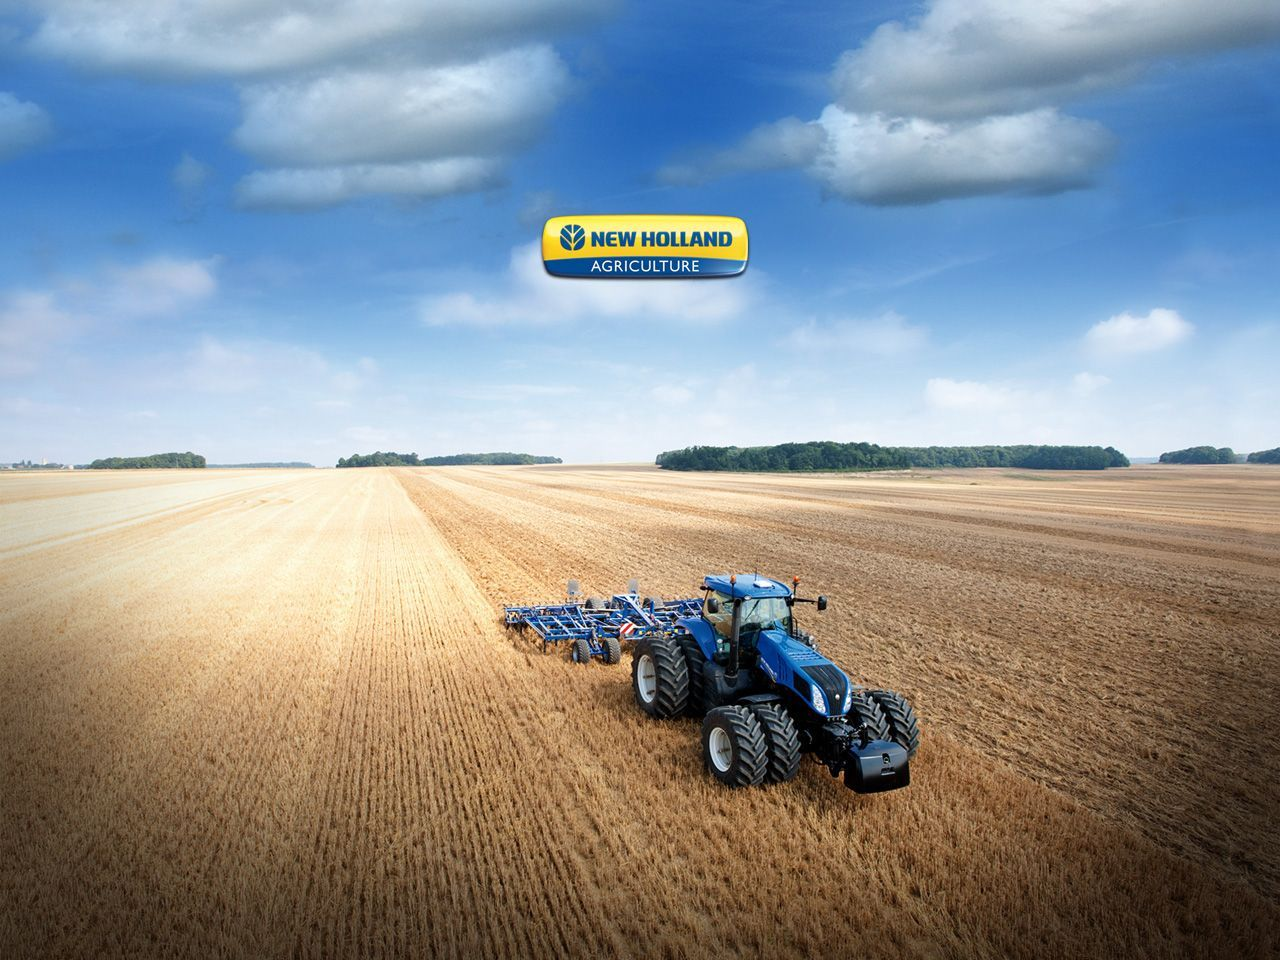 new holland agriculture wallpapers android tractors new holland tractor wallpaper. Black Bedroom Furniture Sets. Home Design Ideas